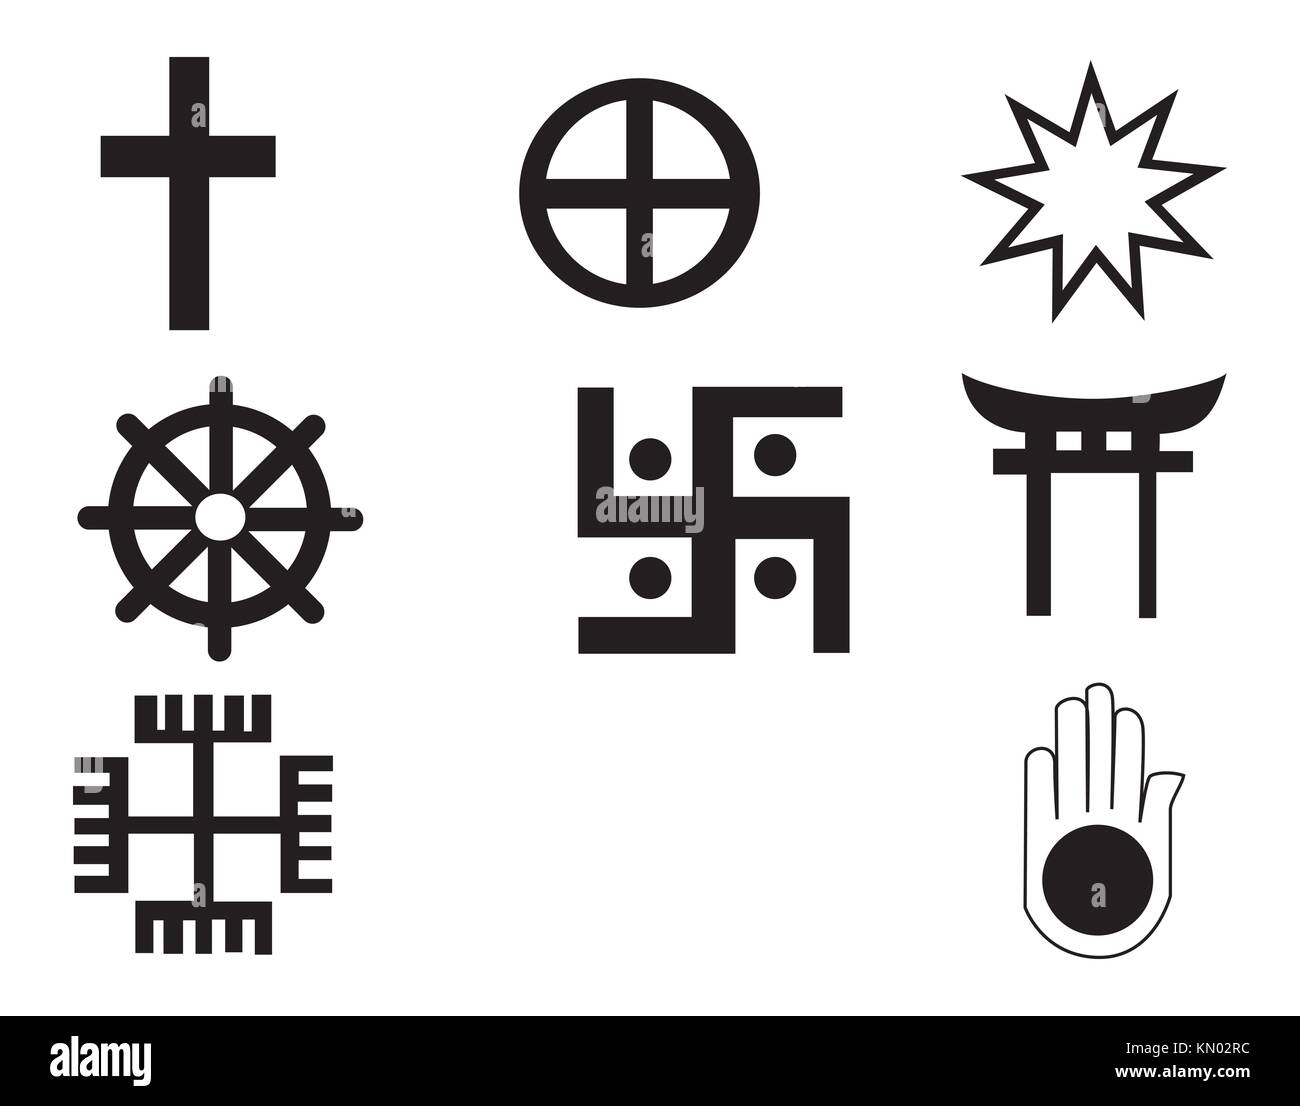 Religion symbols cut out stock images pictures alamy different religions symbols stock image biocorpaavc Gallery